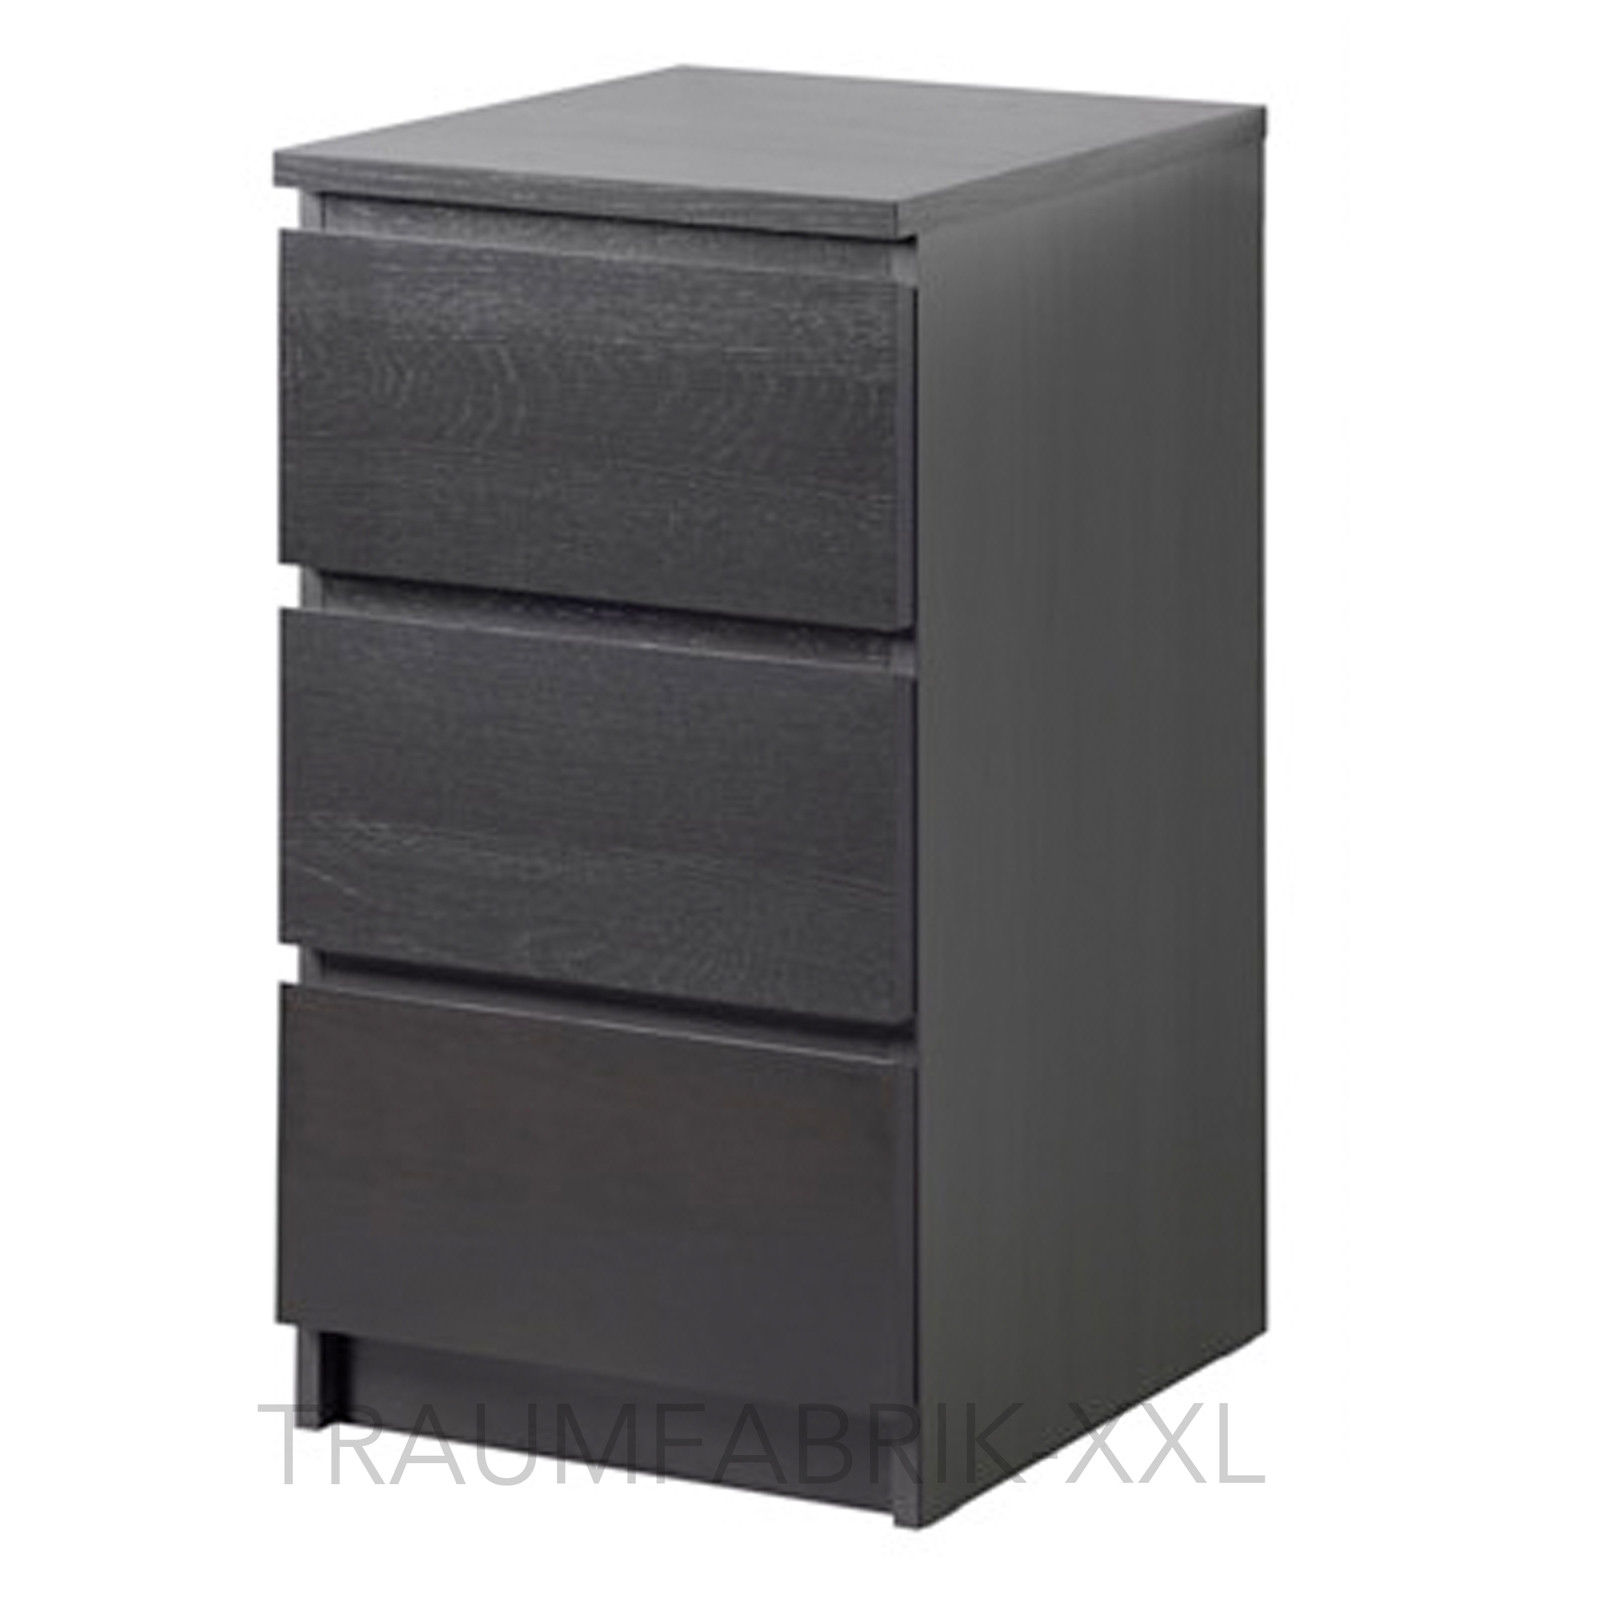 ikea malm kommode mit 3 schubladen schwarz nachtkonsole. Black Bedroom Furniture Sets. Home Design Ideas